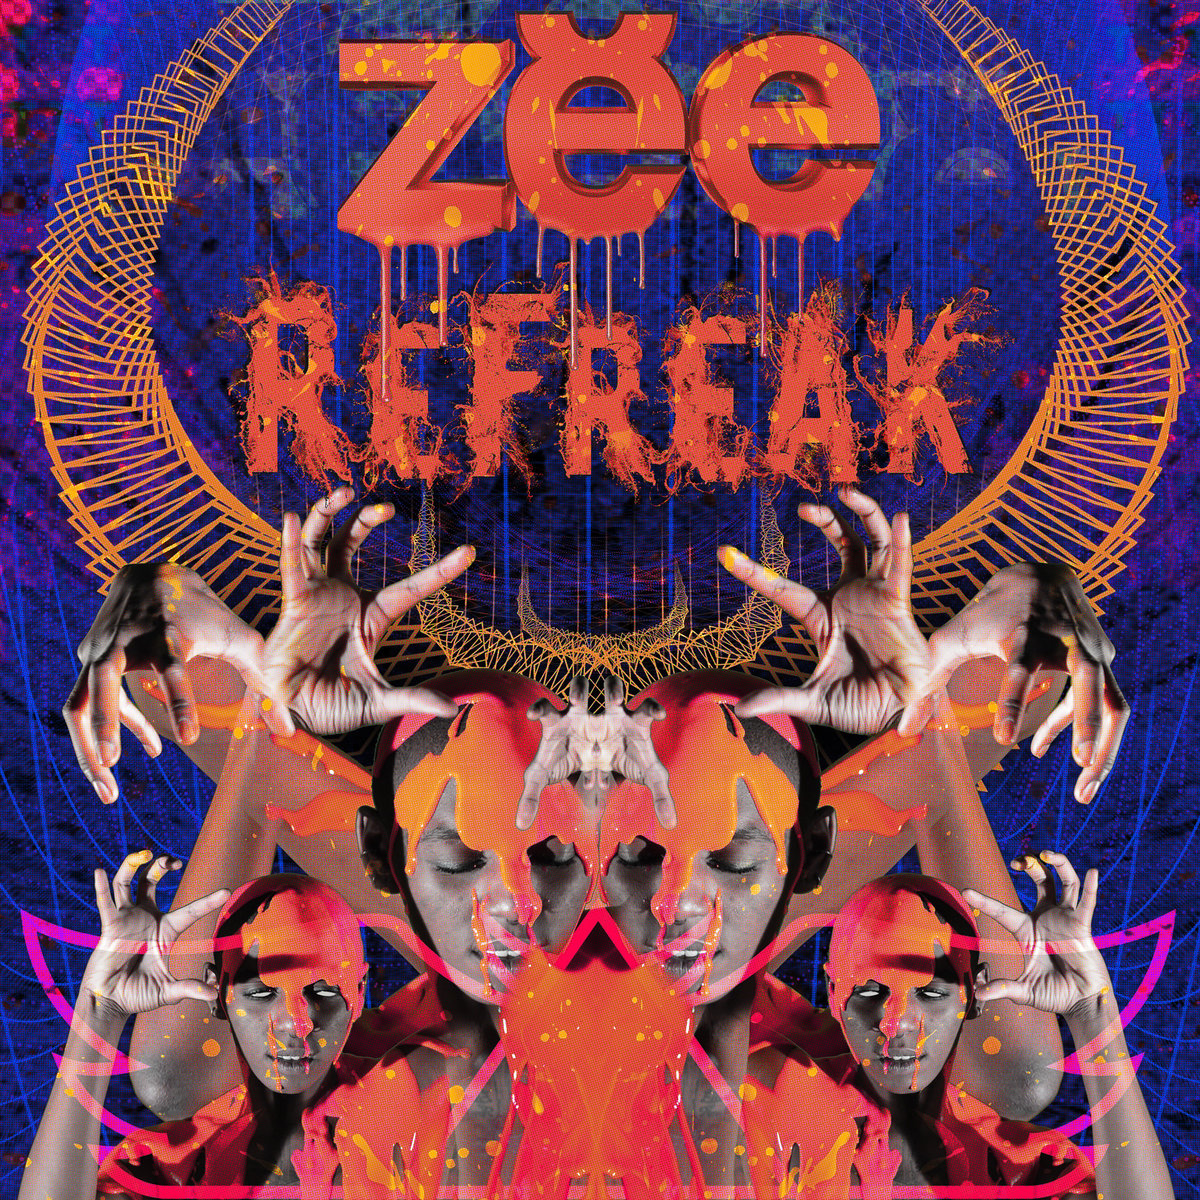 Zebbler Encanti Experience - Perceptronium (Blaze Mundo Remix) @ 'ReFreak' album (electronic, bass)